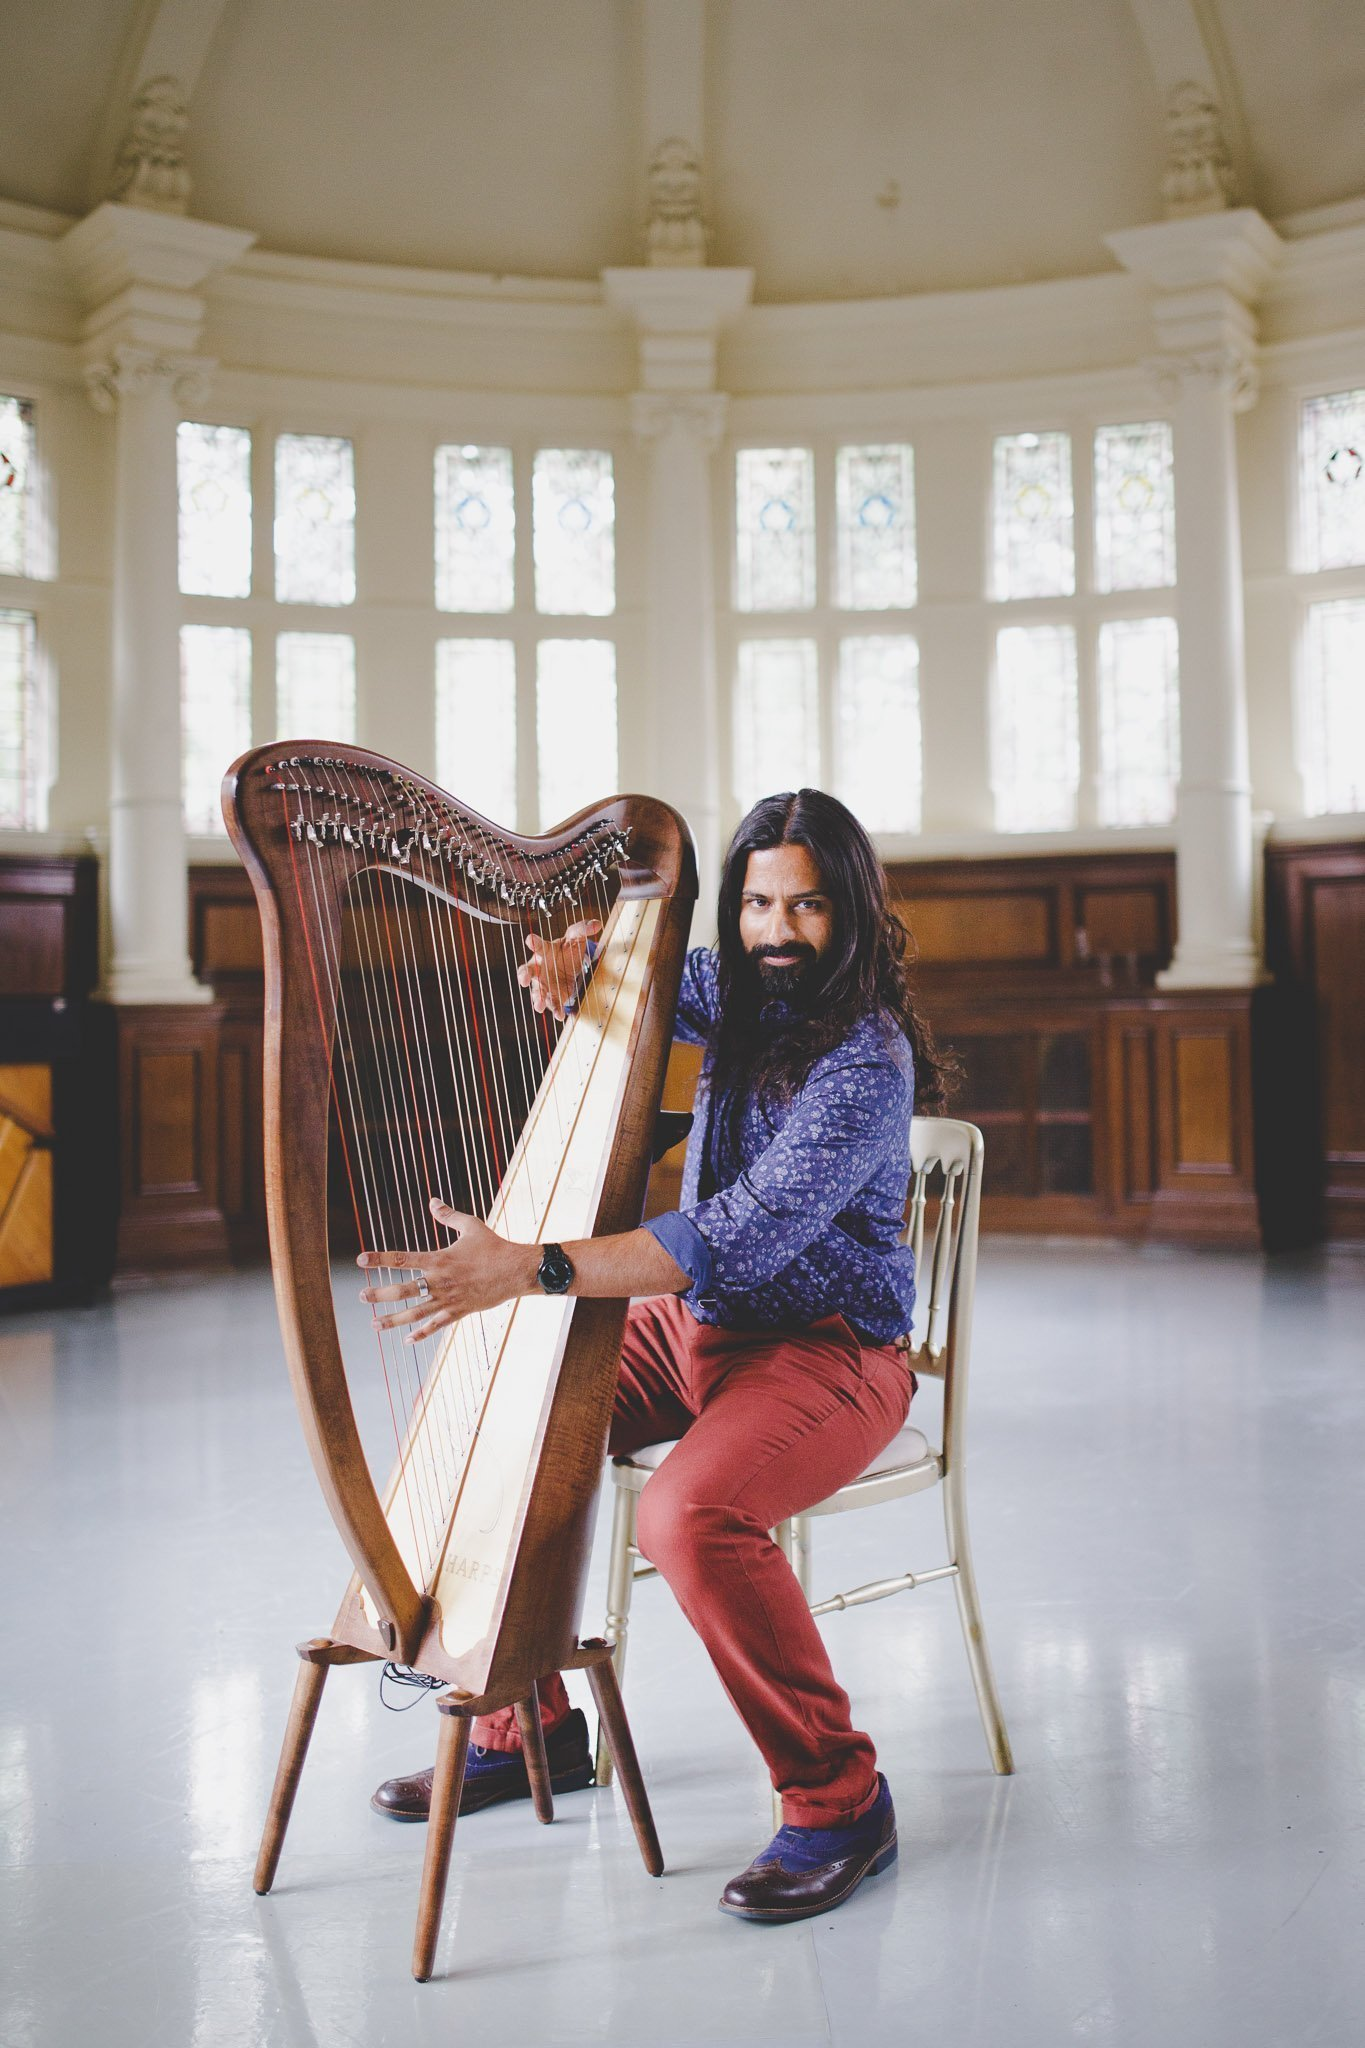 Portrait of Harpreet Kalsi, photographer & owner of thatthingyoupluck, sitting down playing a harp.